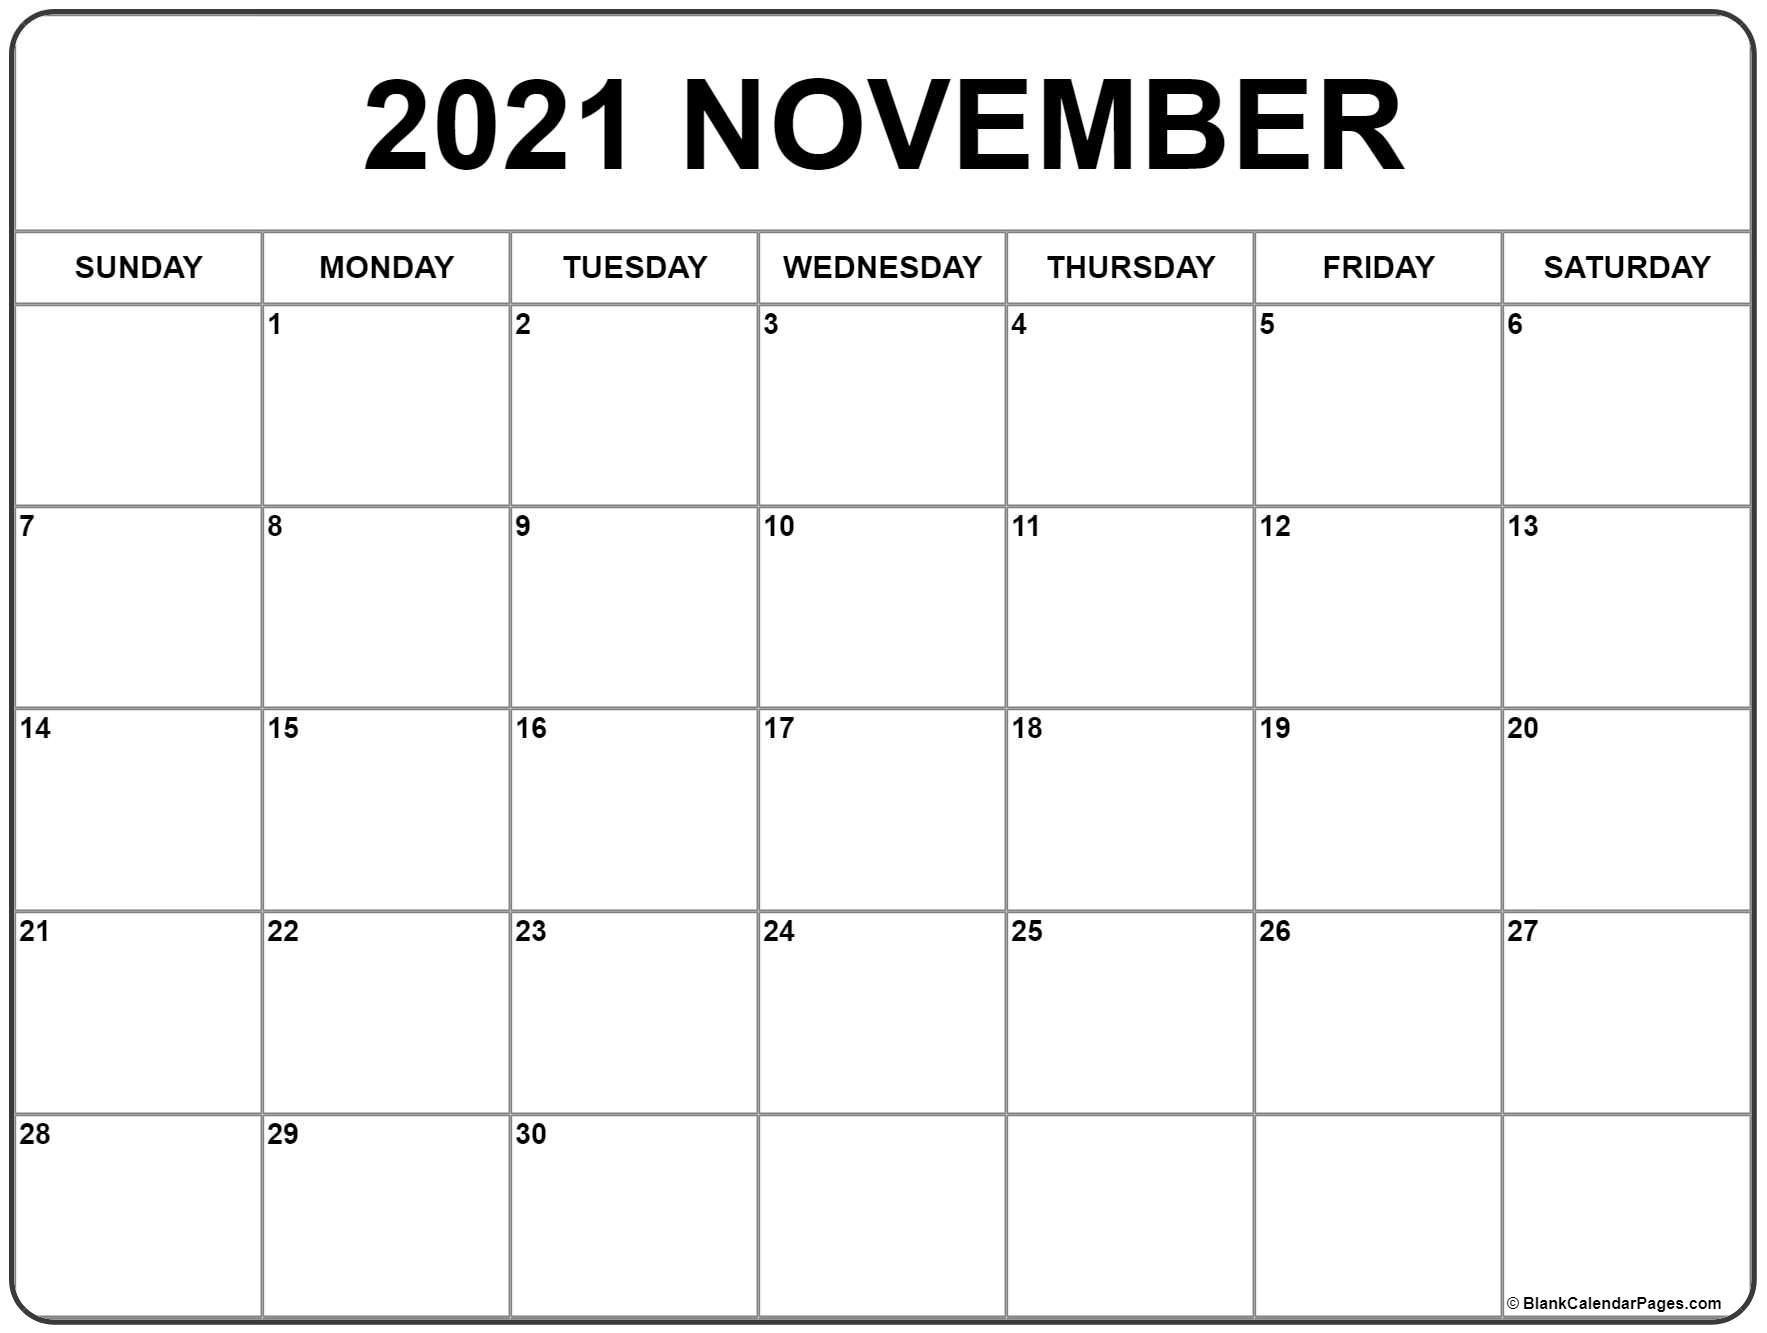 Calendar For Nov 2021 November 2021 calendar | free printable calendar